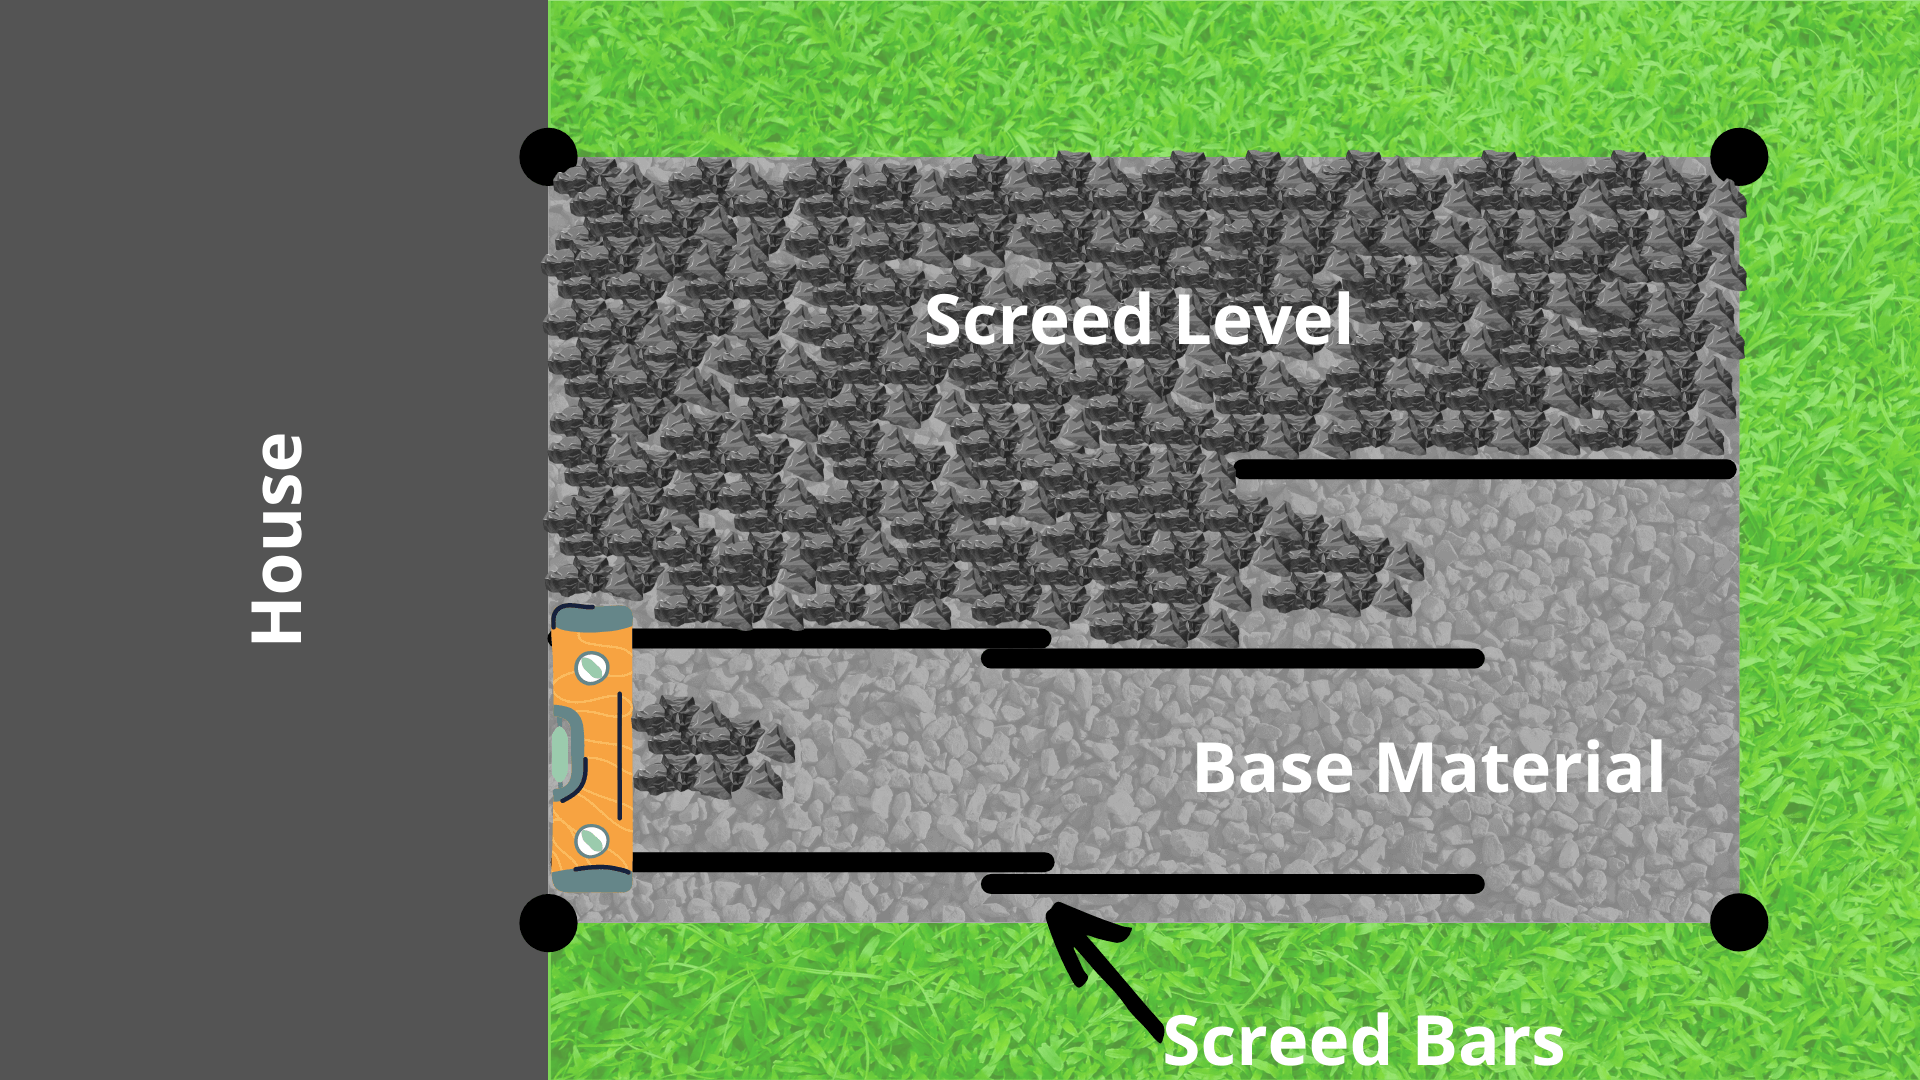 screeding-level-for-pavers